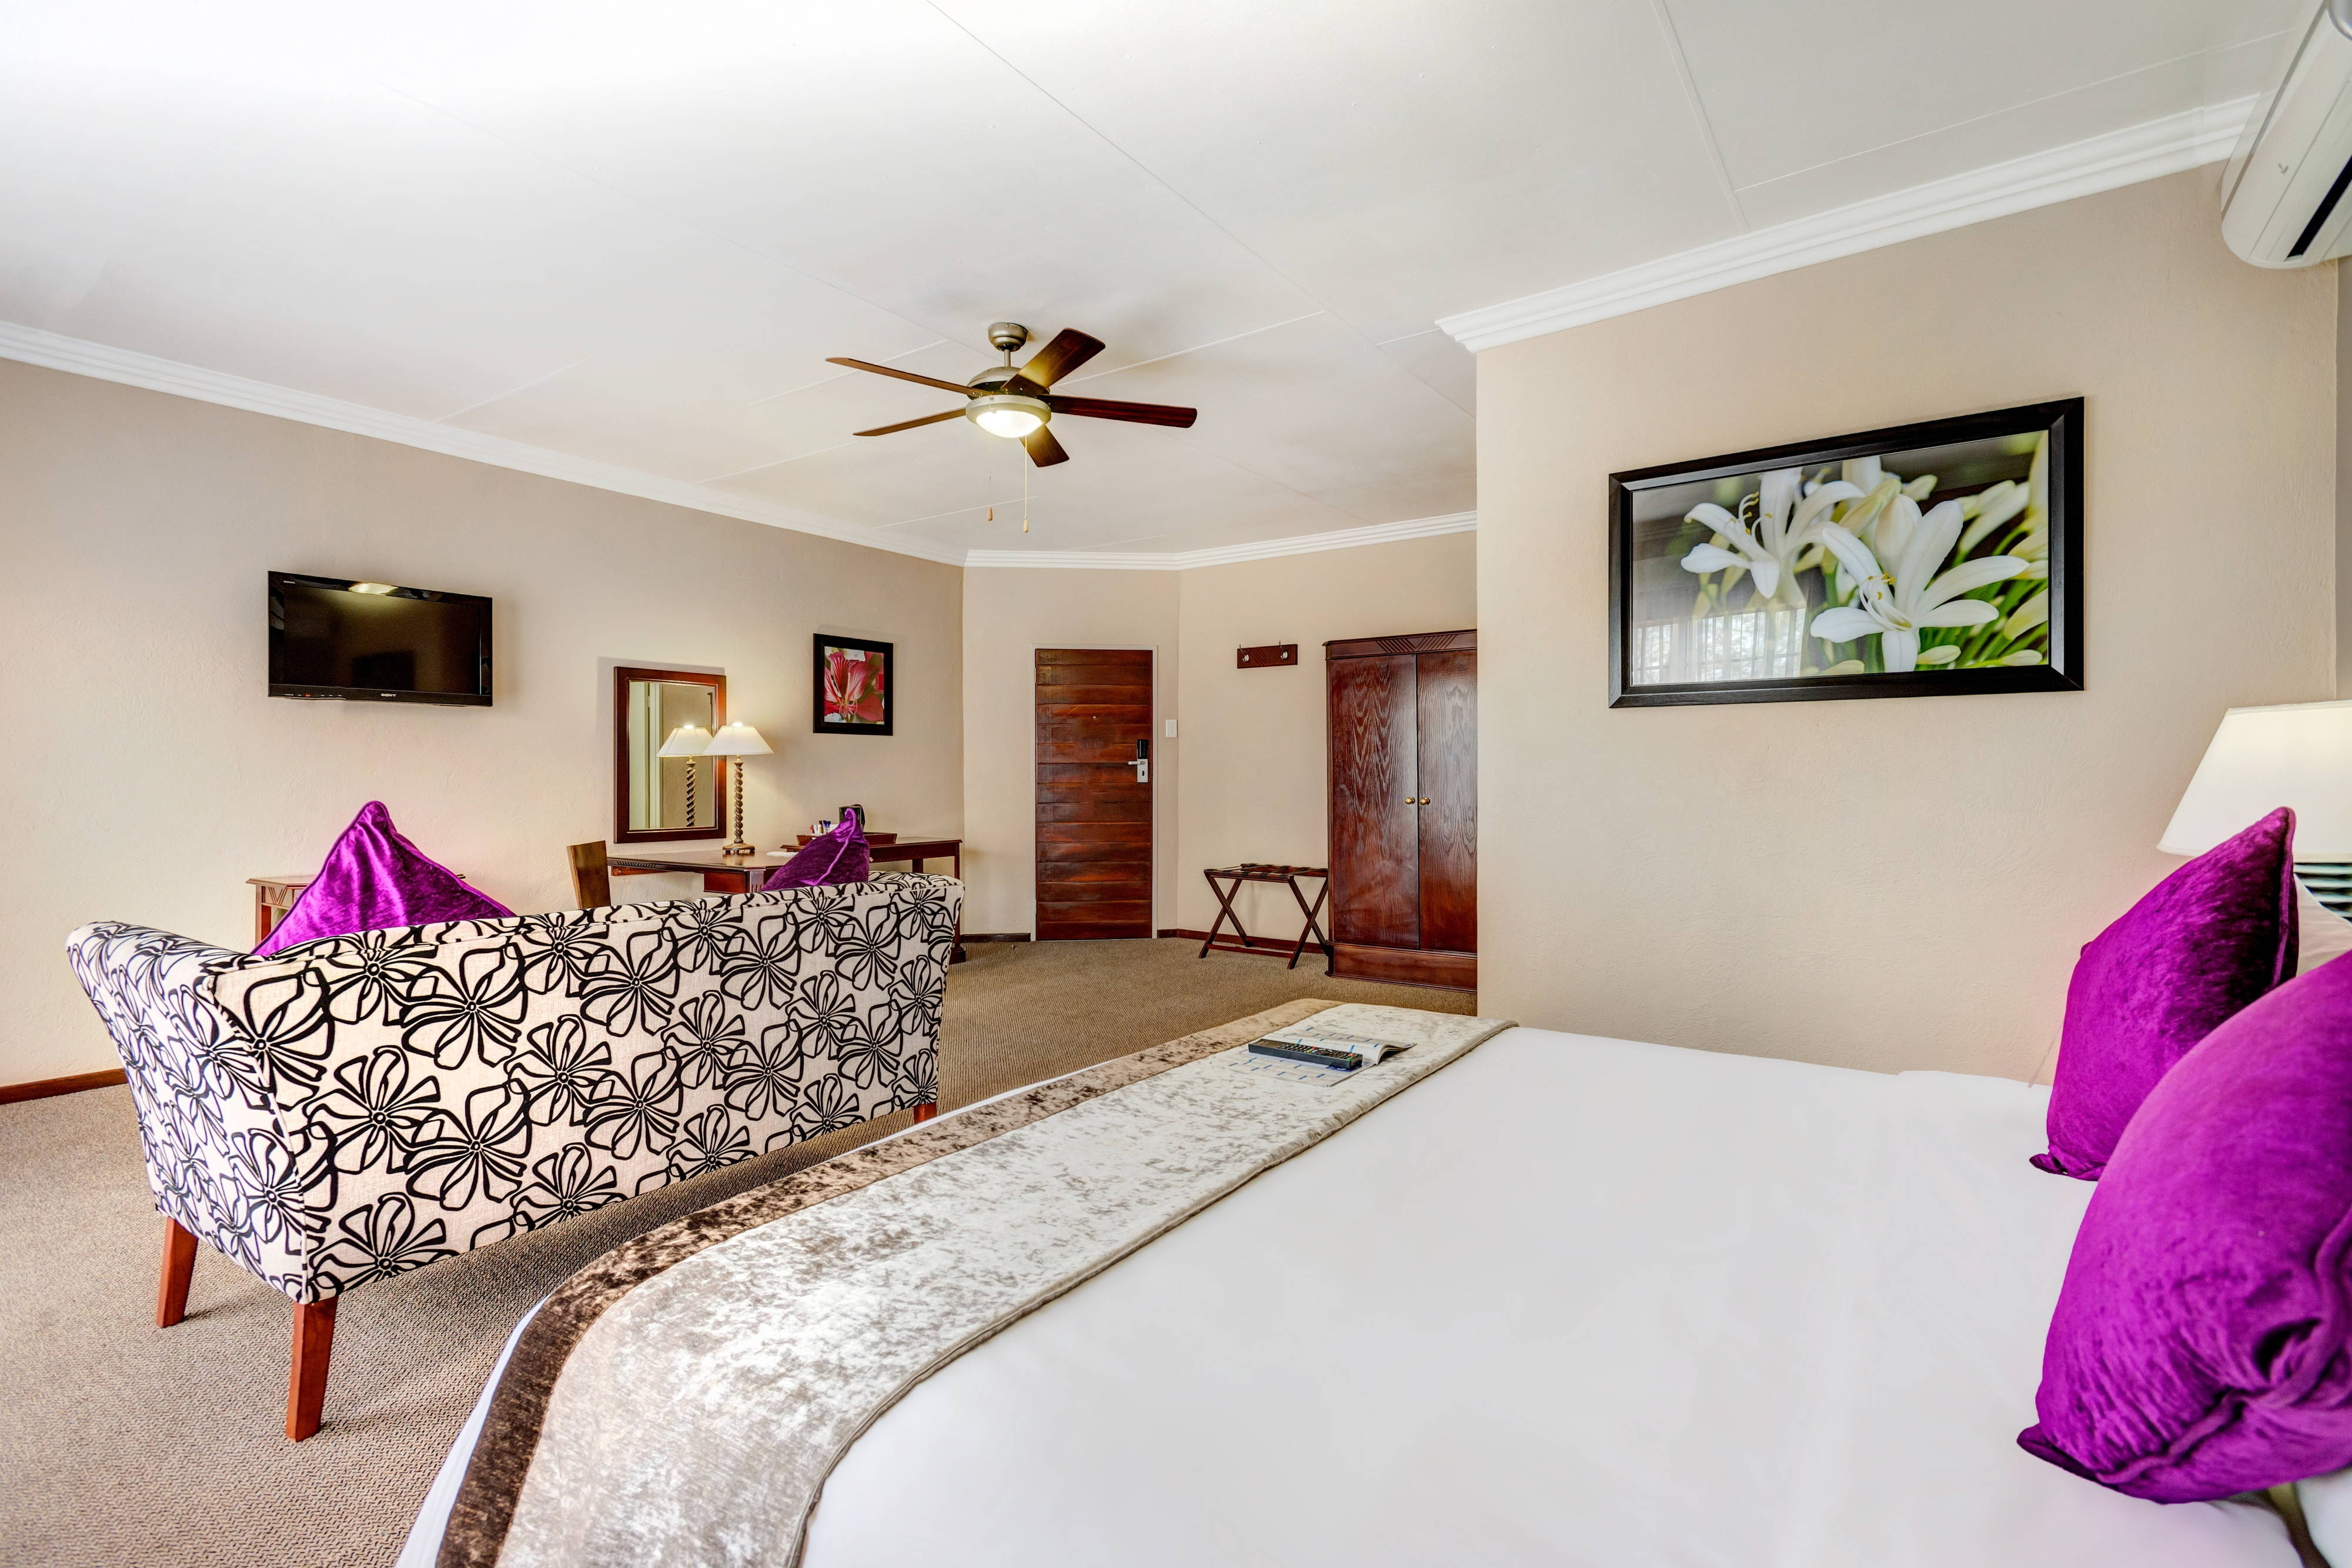 Protea Hotel Hazyview junior suite